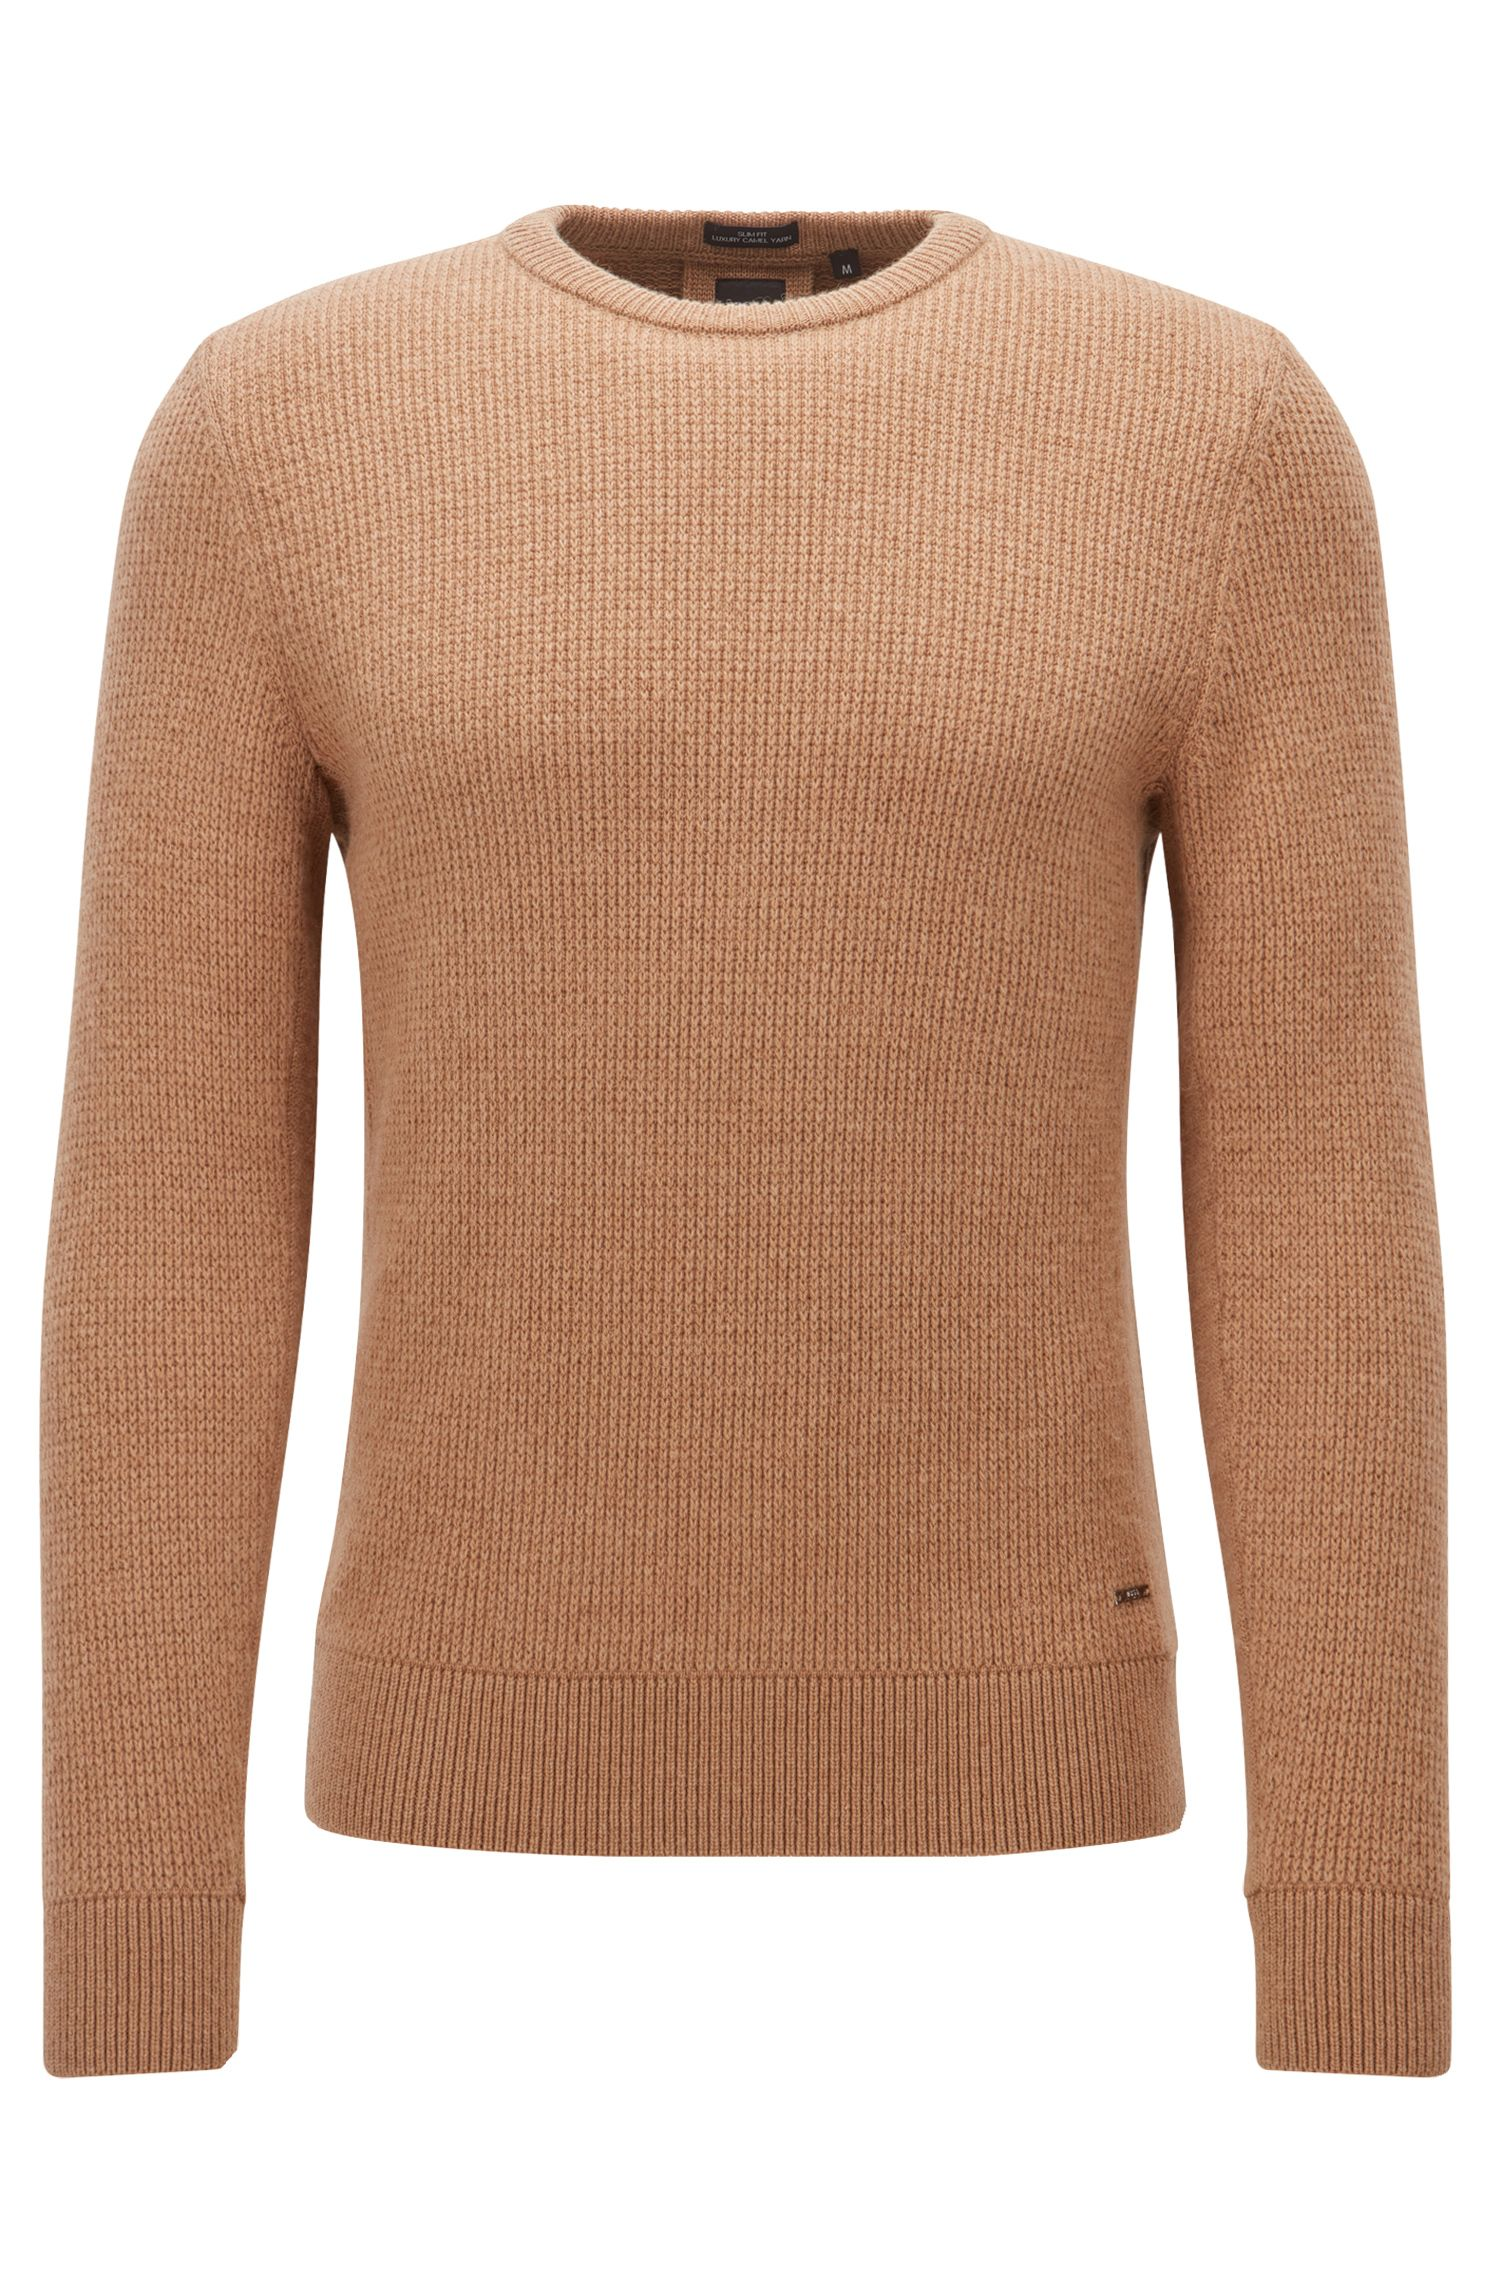 Camel-hair long-sleeved sweater